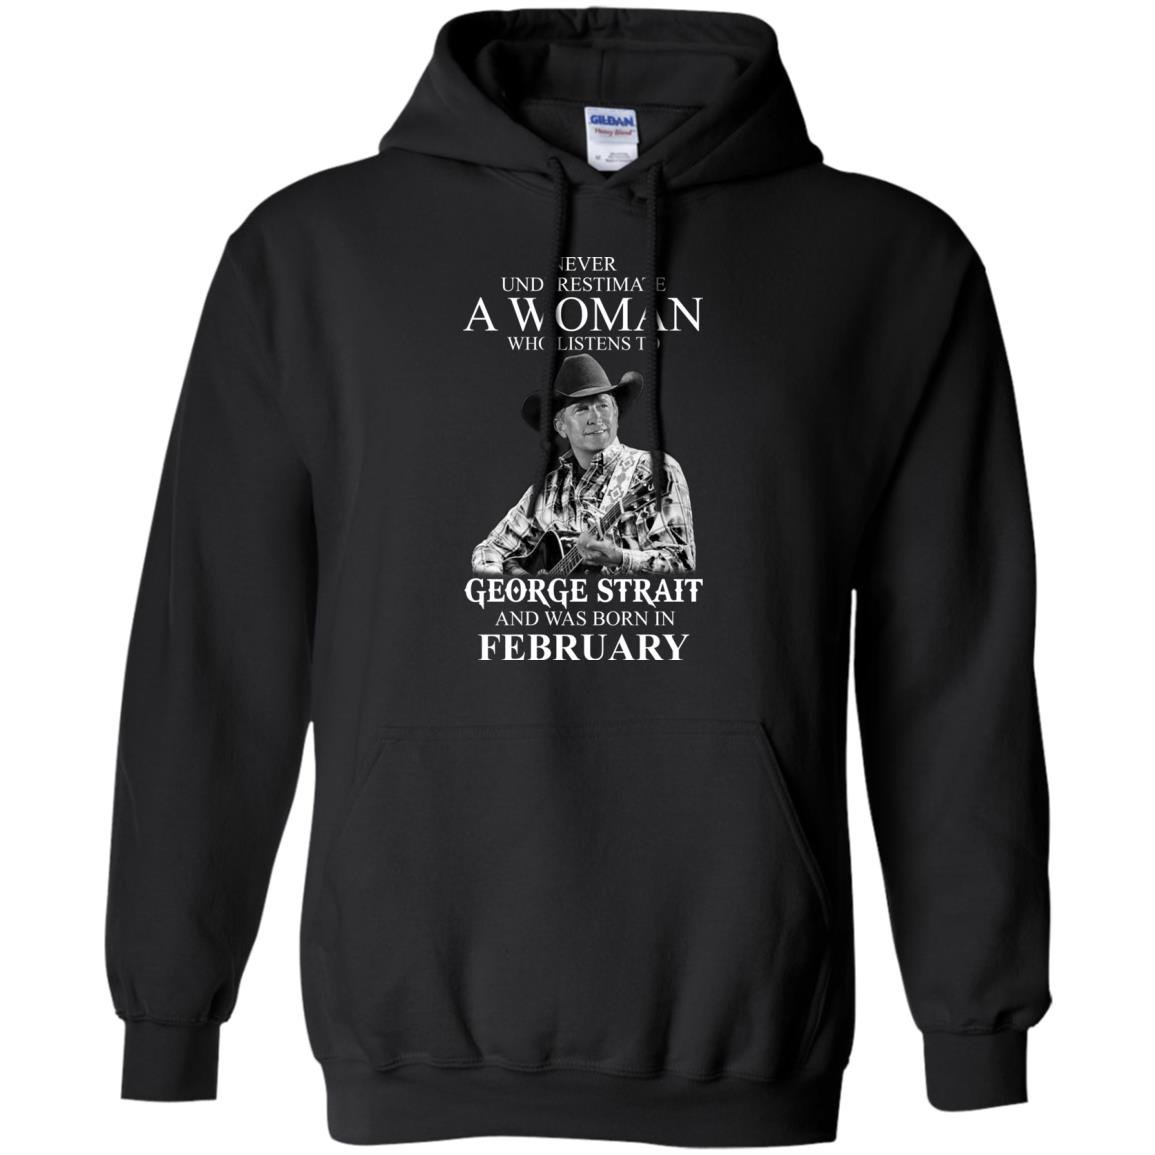 image 450 - Never Underestimate A Woman Who Listens To George Strait And Was Born In February shirt